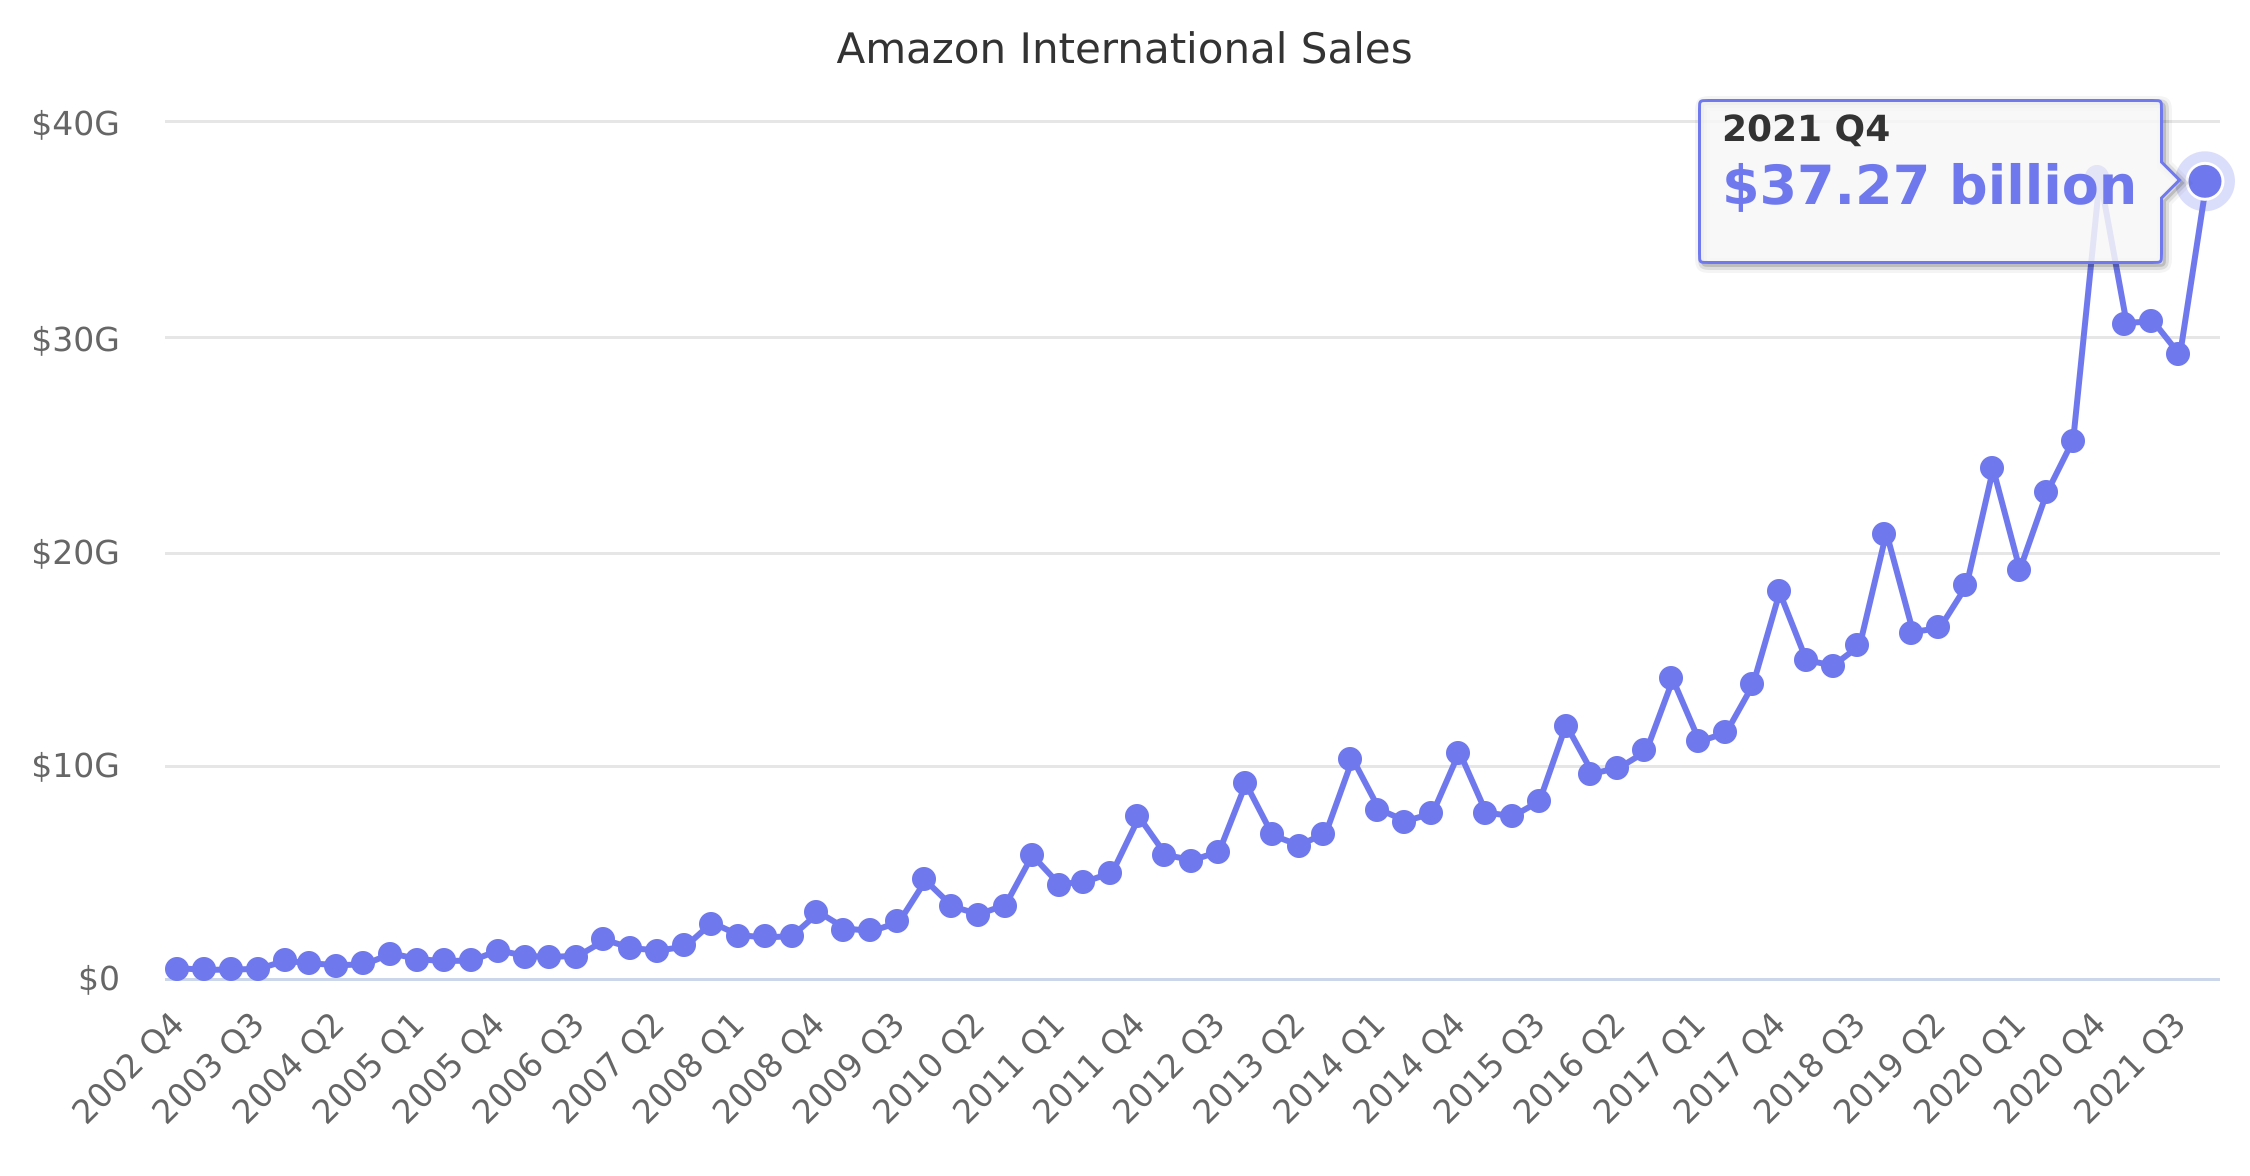 Amazon International Sales 2002-2019